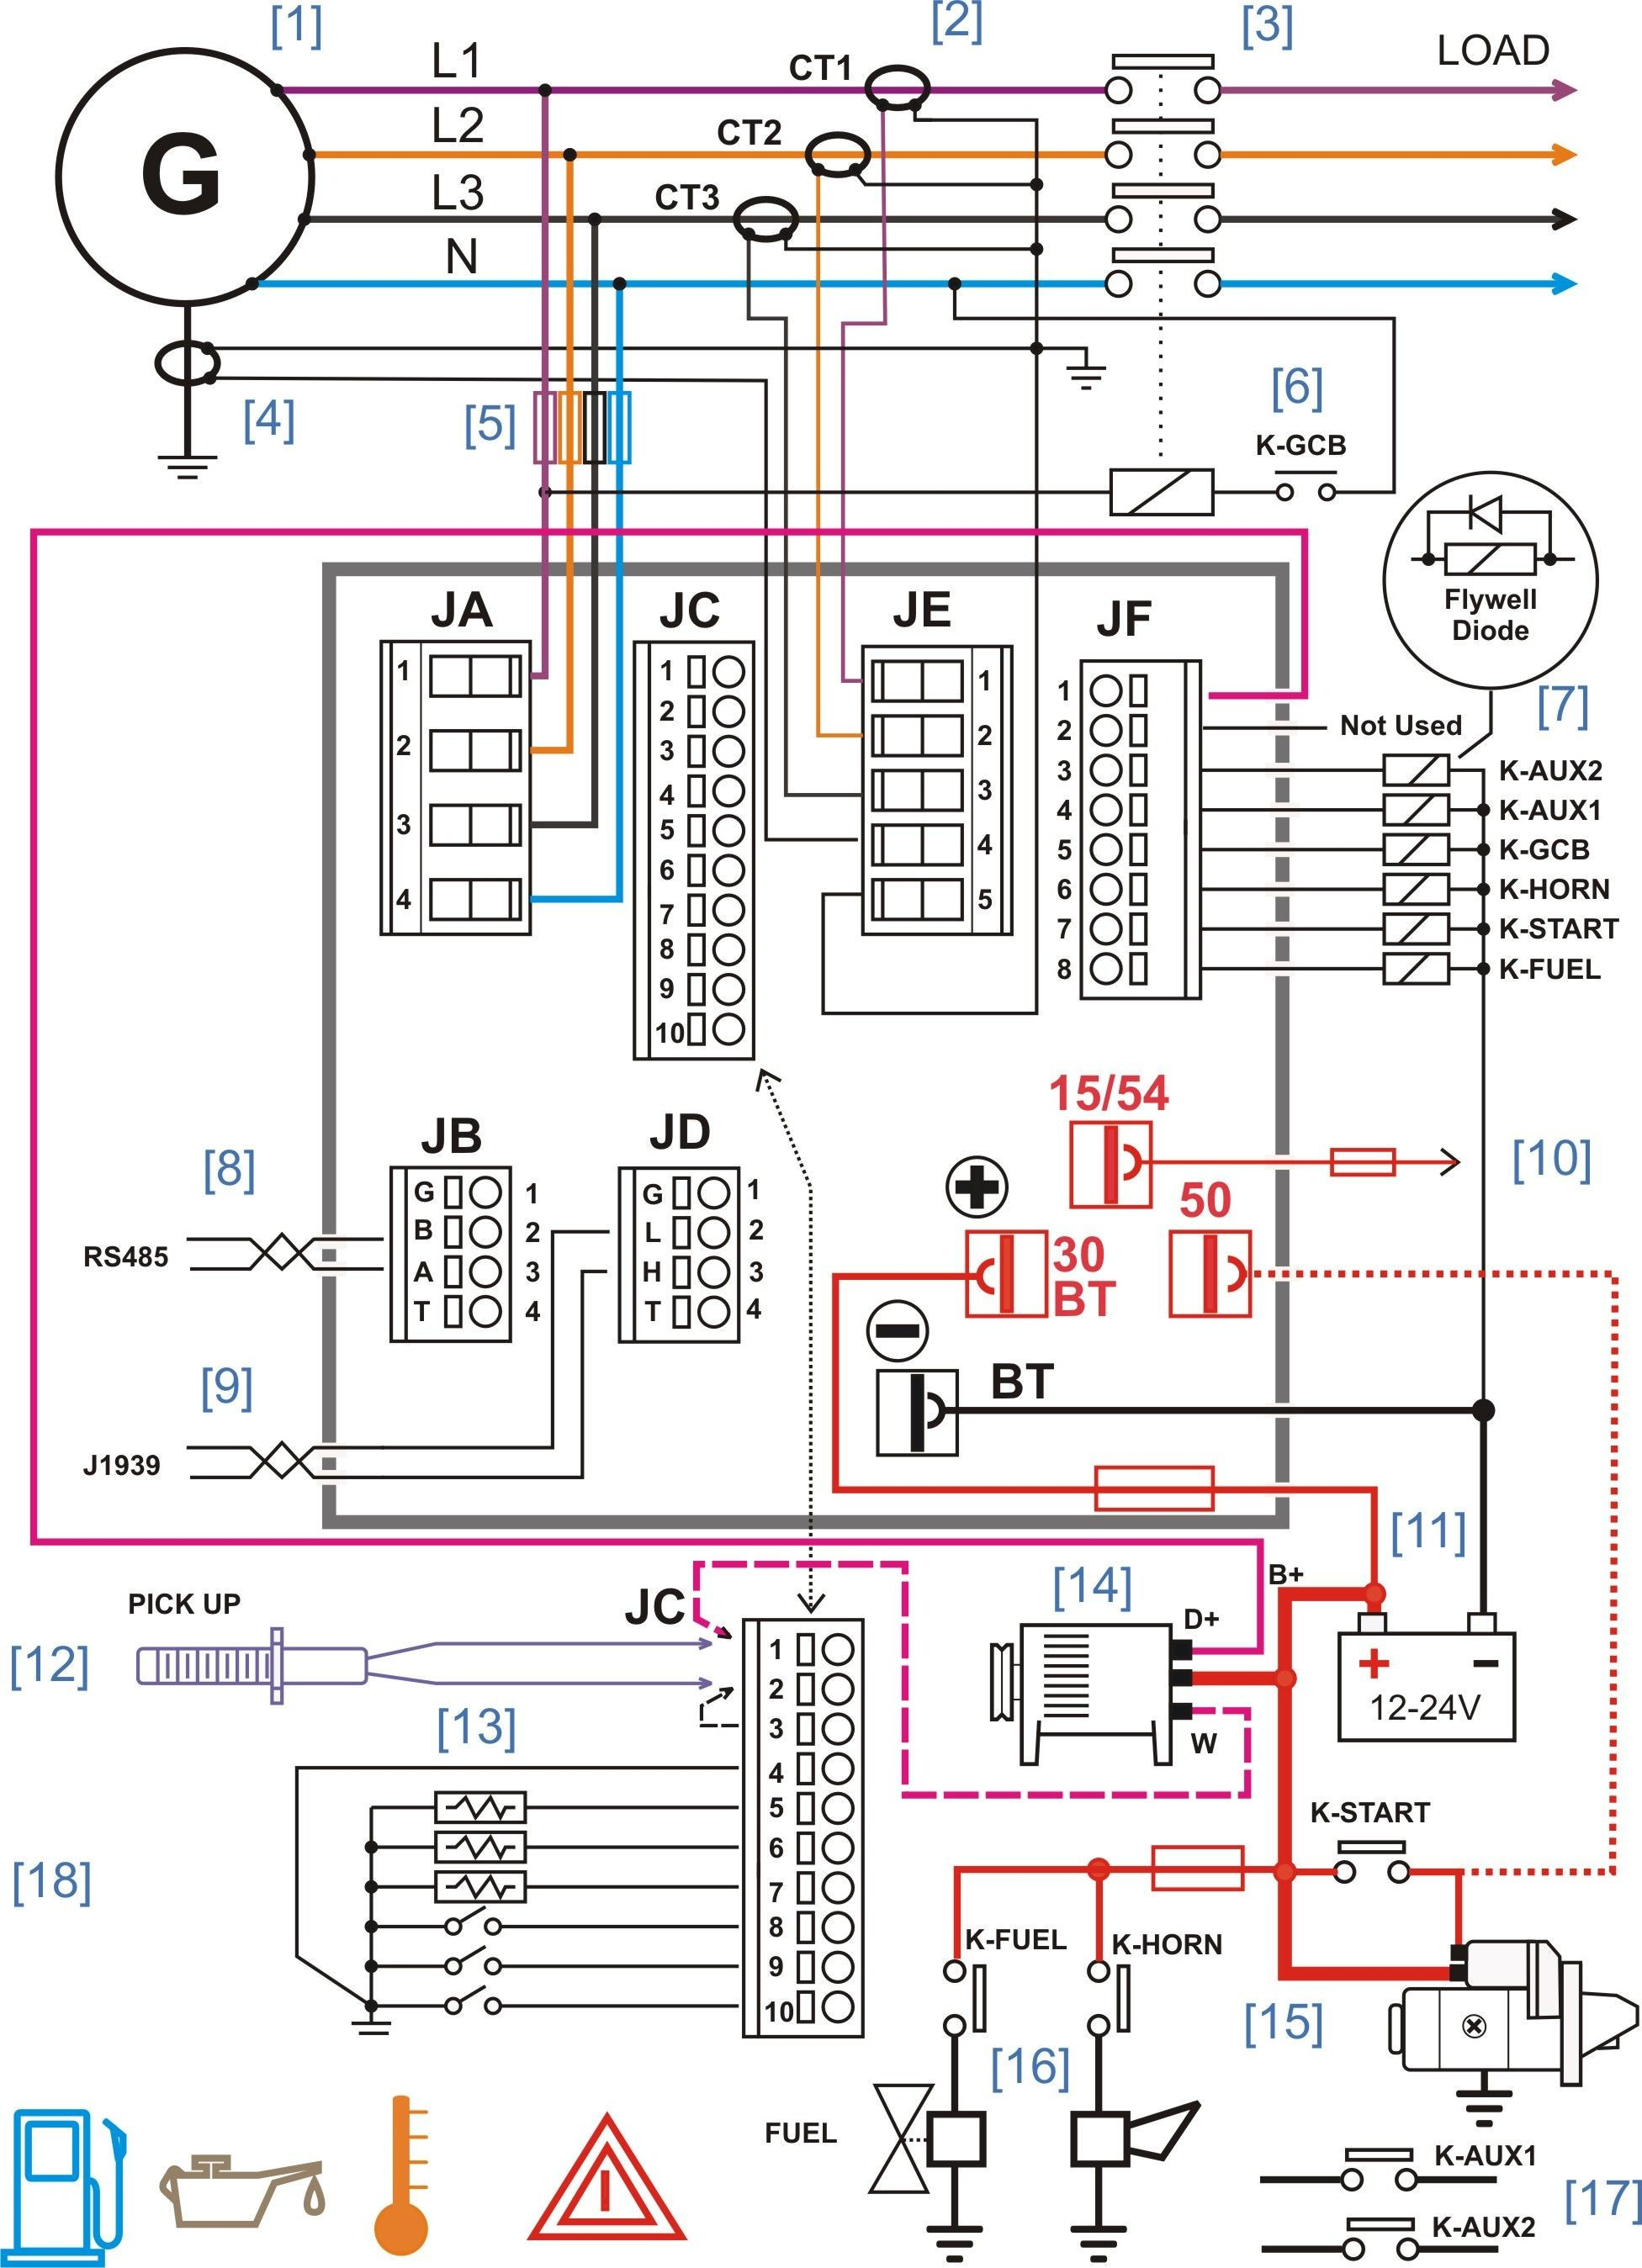 3 Pole Transfer Switch Wiring Diagram - Wiring Diagram 3 Phase Generator  Inspirationa Wiring Diagram Ac